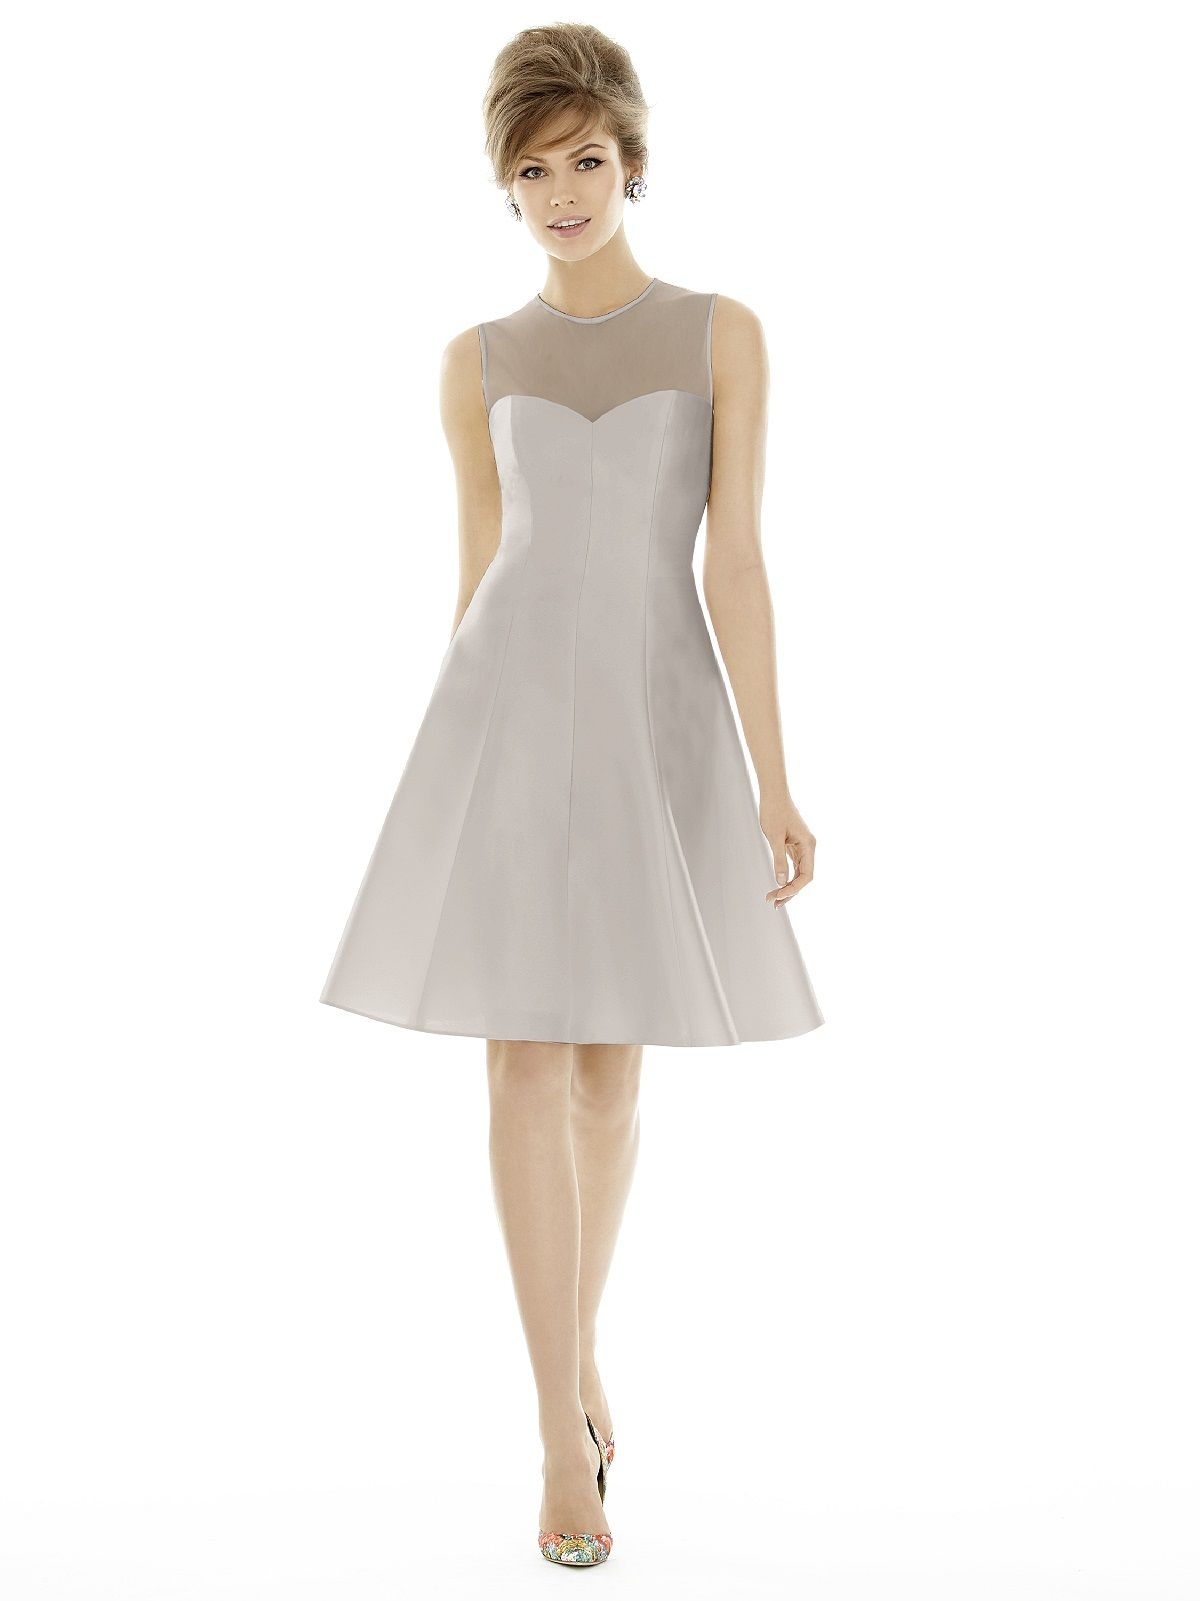 Modest short bridesmaid dress by alfred sung at the bridal cottage